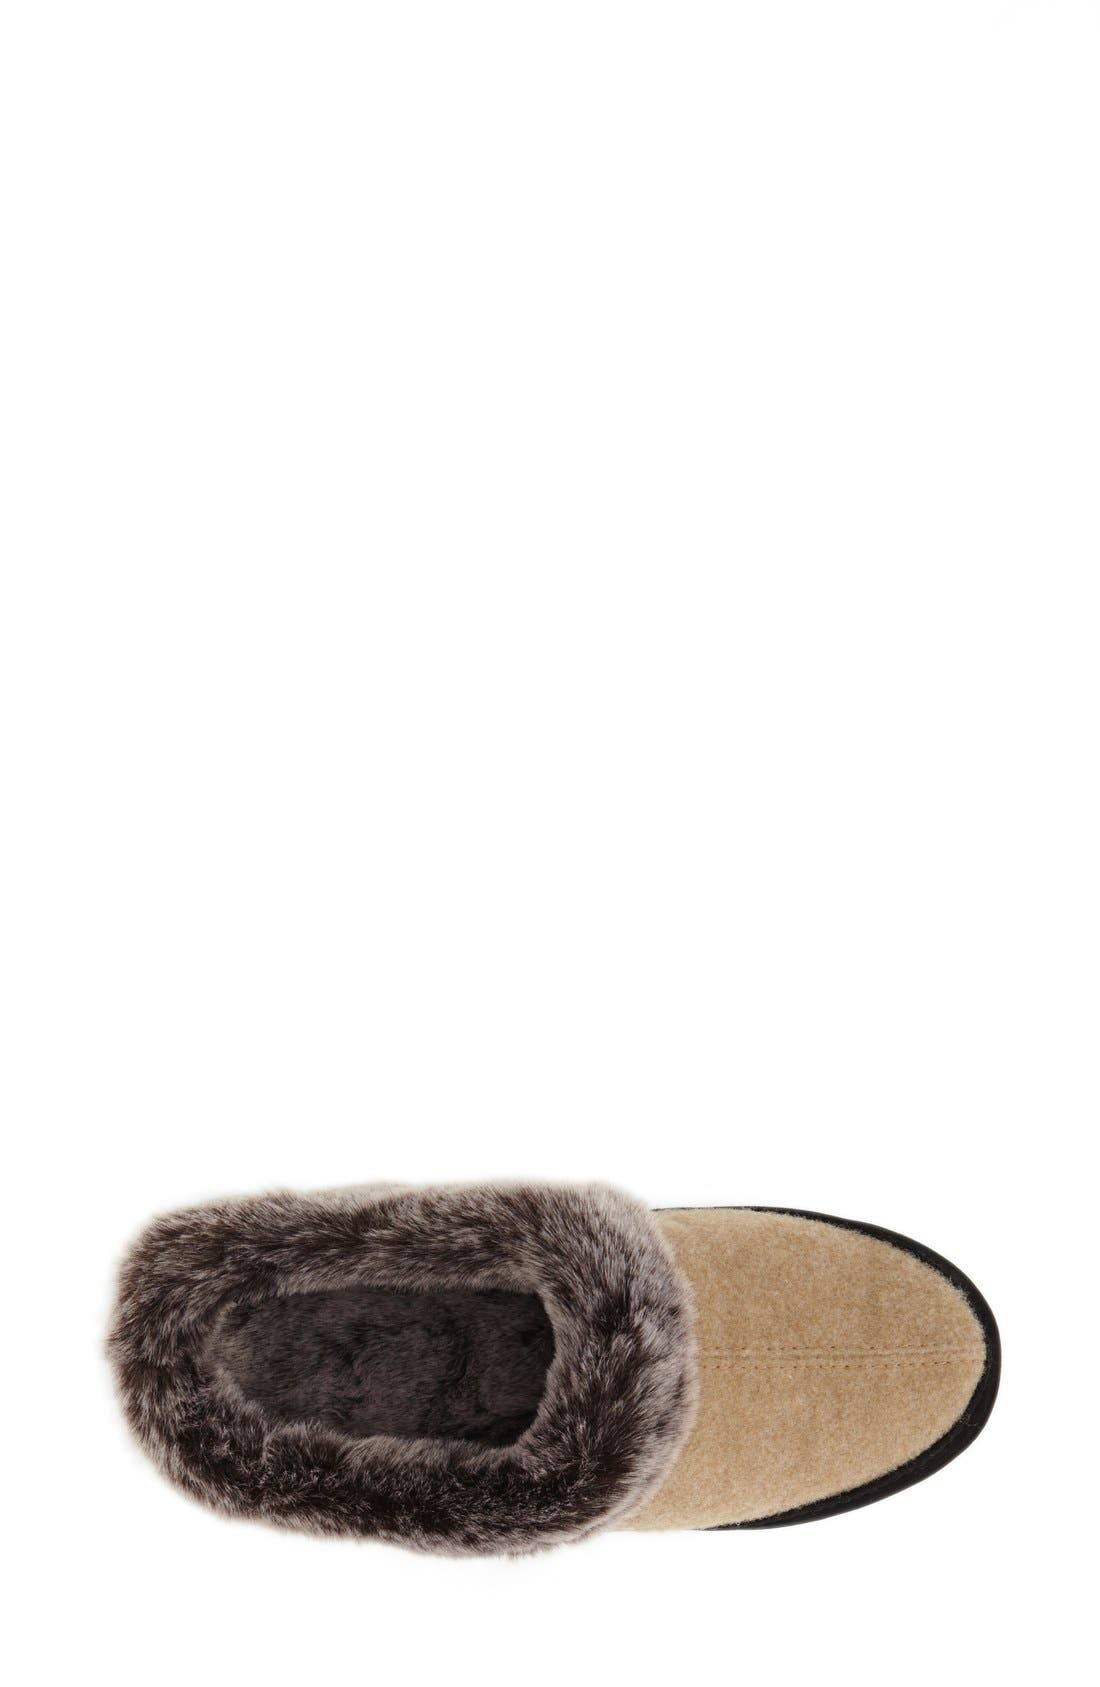 'Cloud Chilla Scuff' Slipper,                             Alternate thumbnail 15, color,